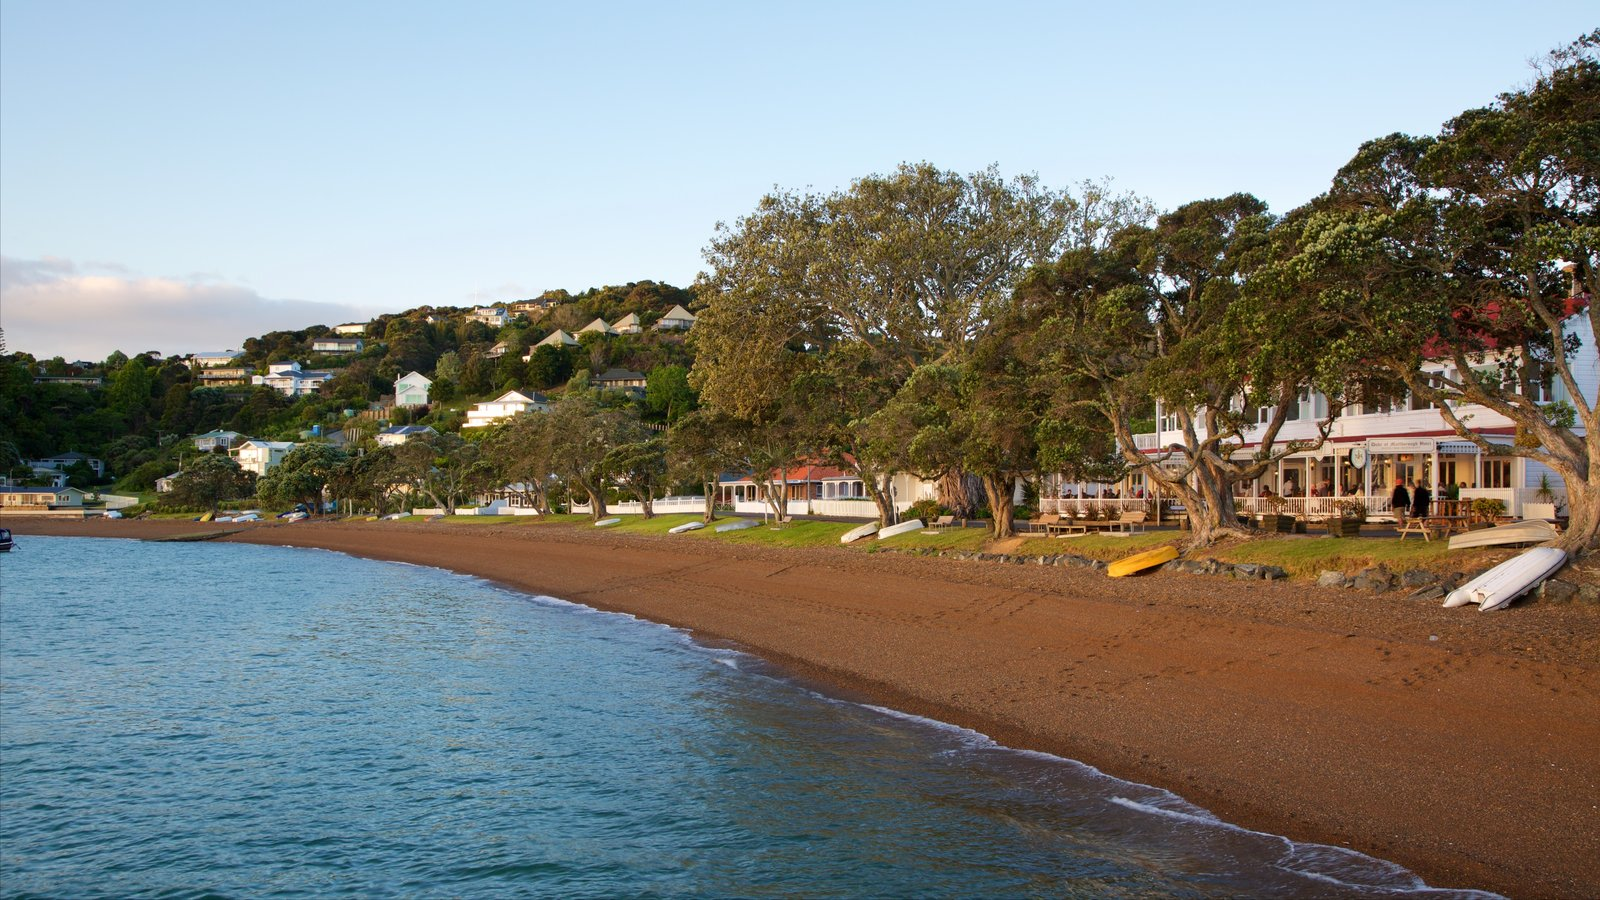 Russell Beach showing a coastal town, a pebble beach and a bay or harbor